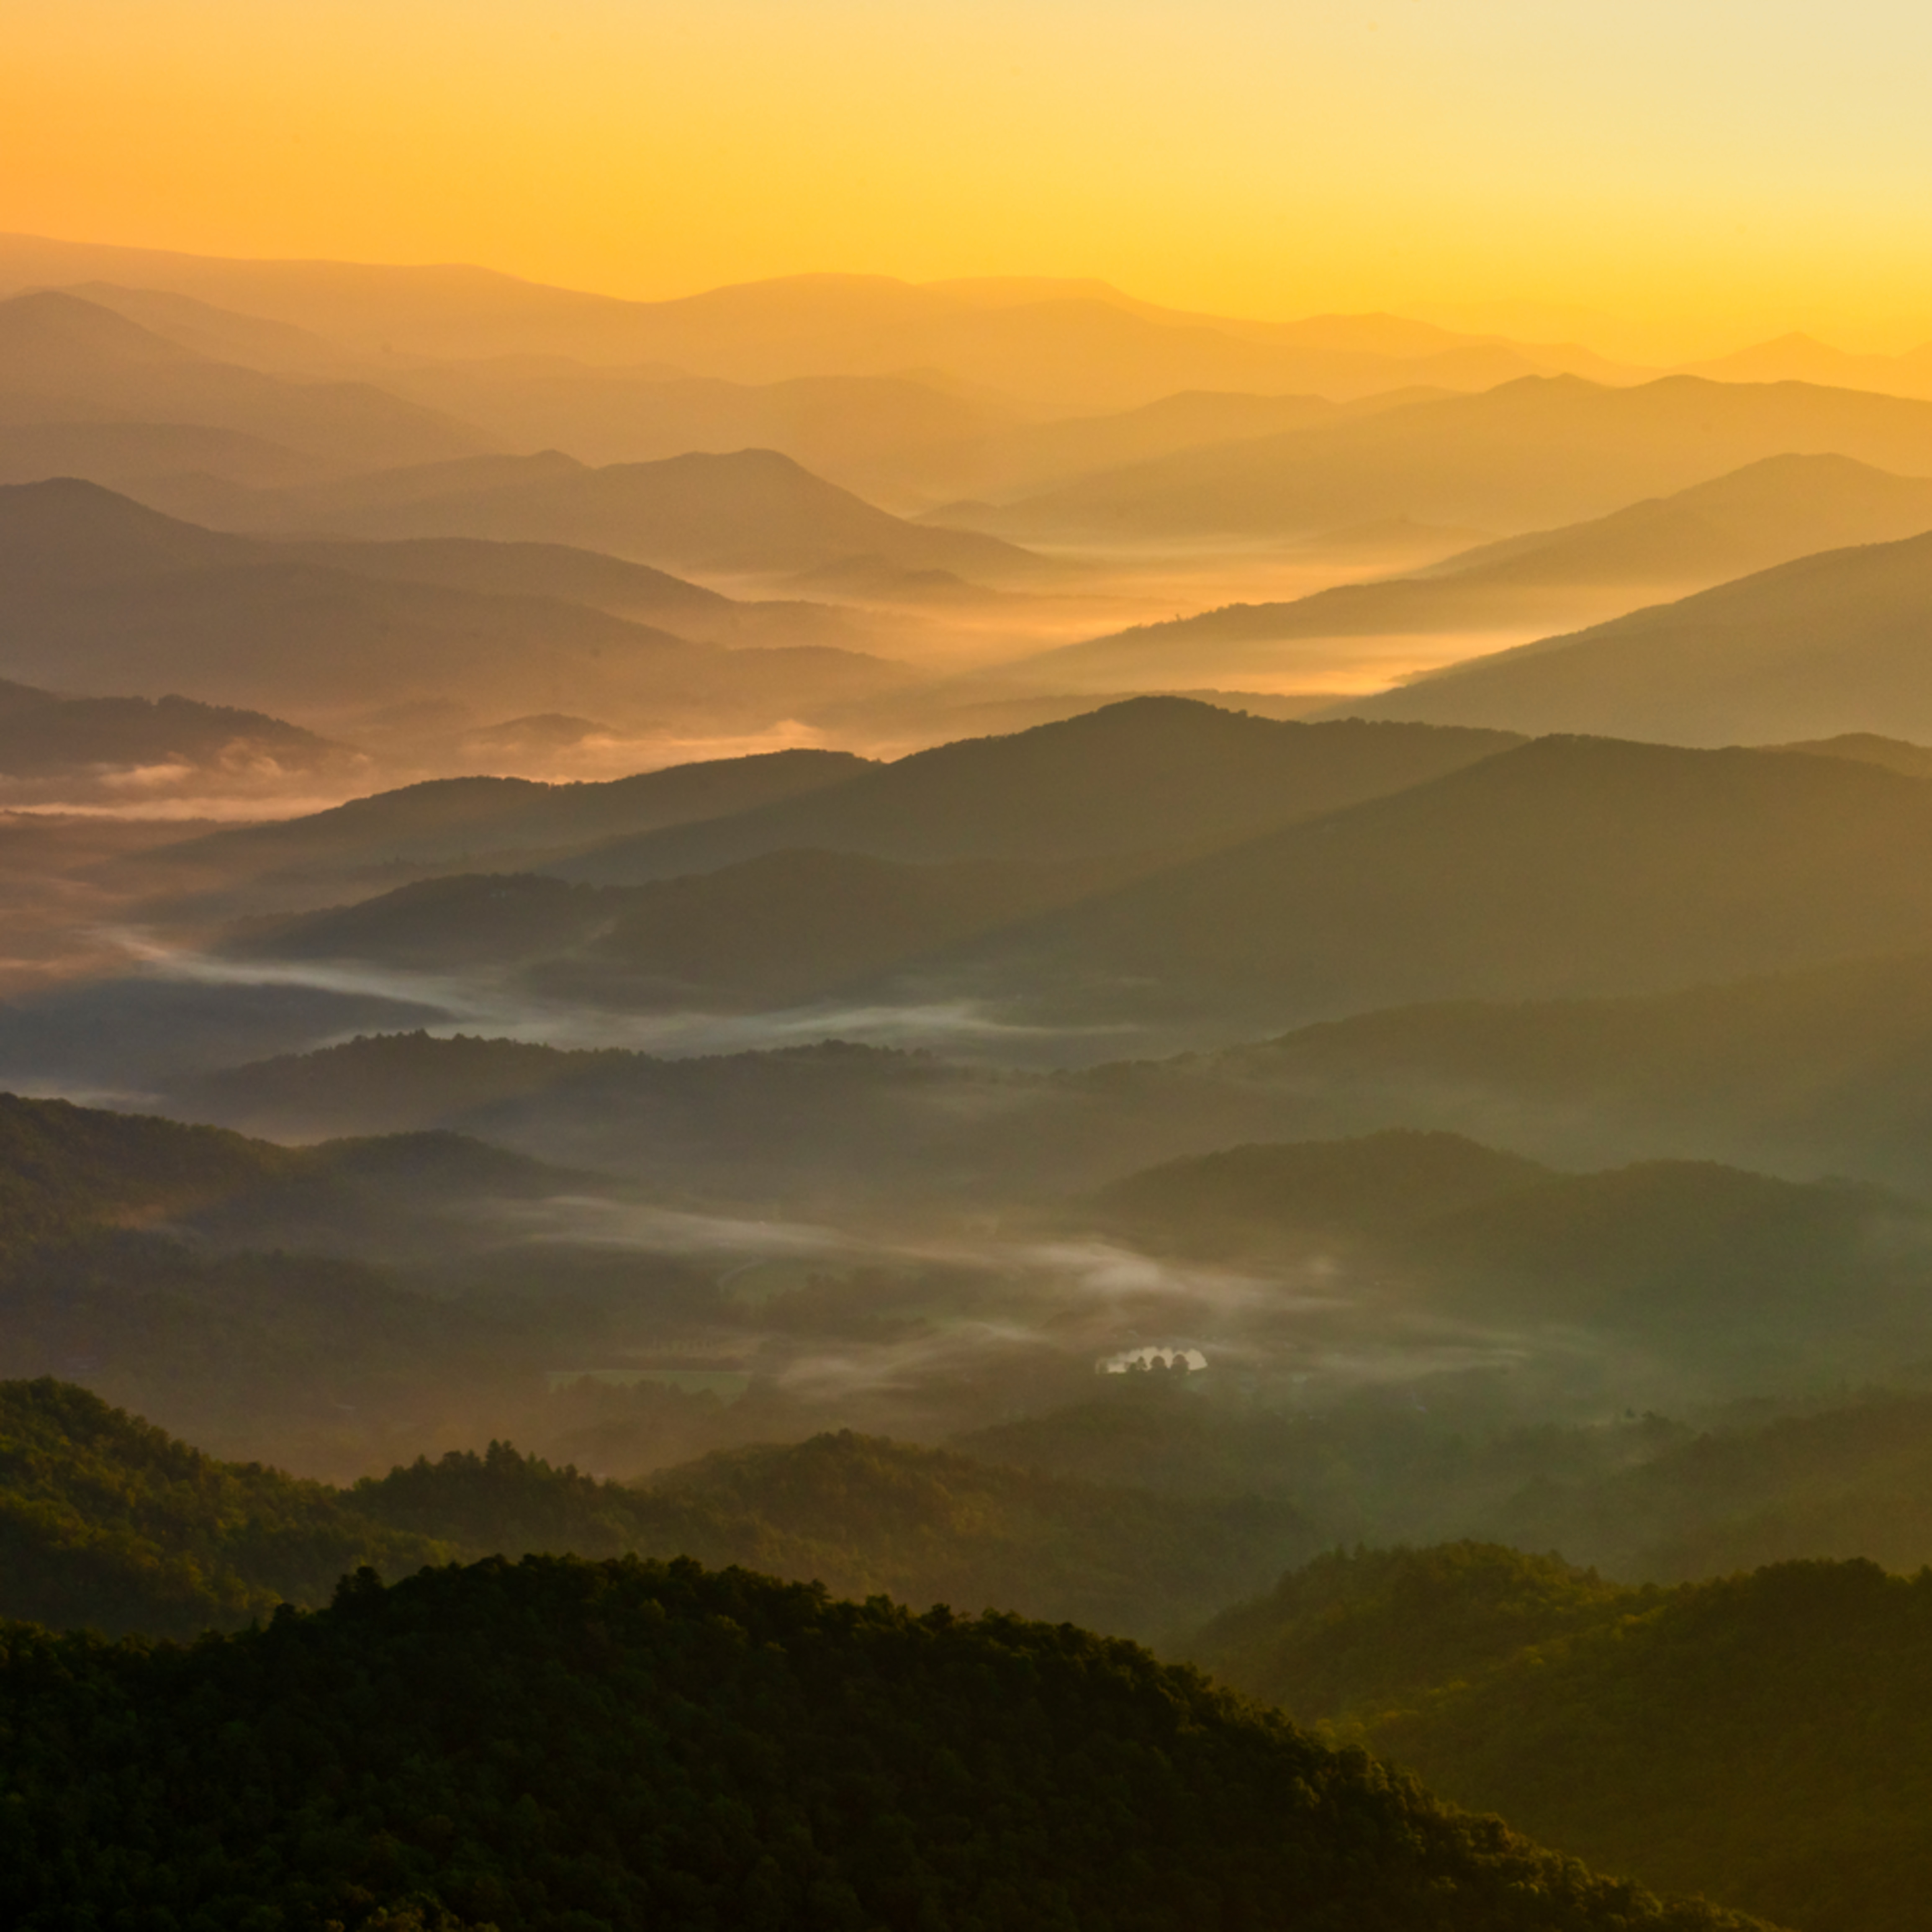 Andy crawford photography brasstown bald sunrise 002 js8nkf